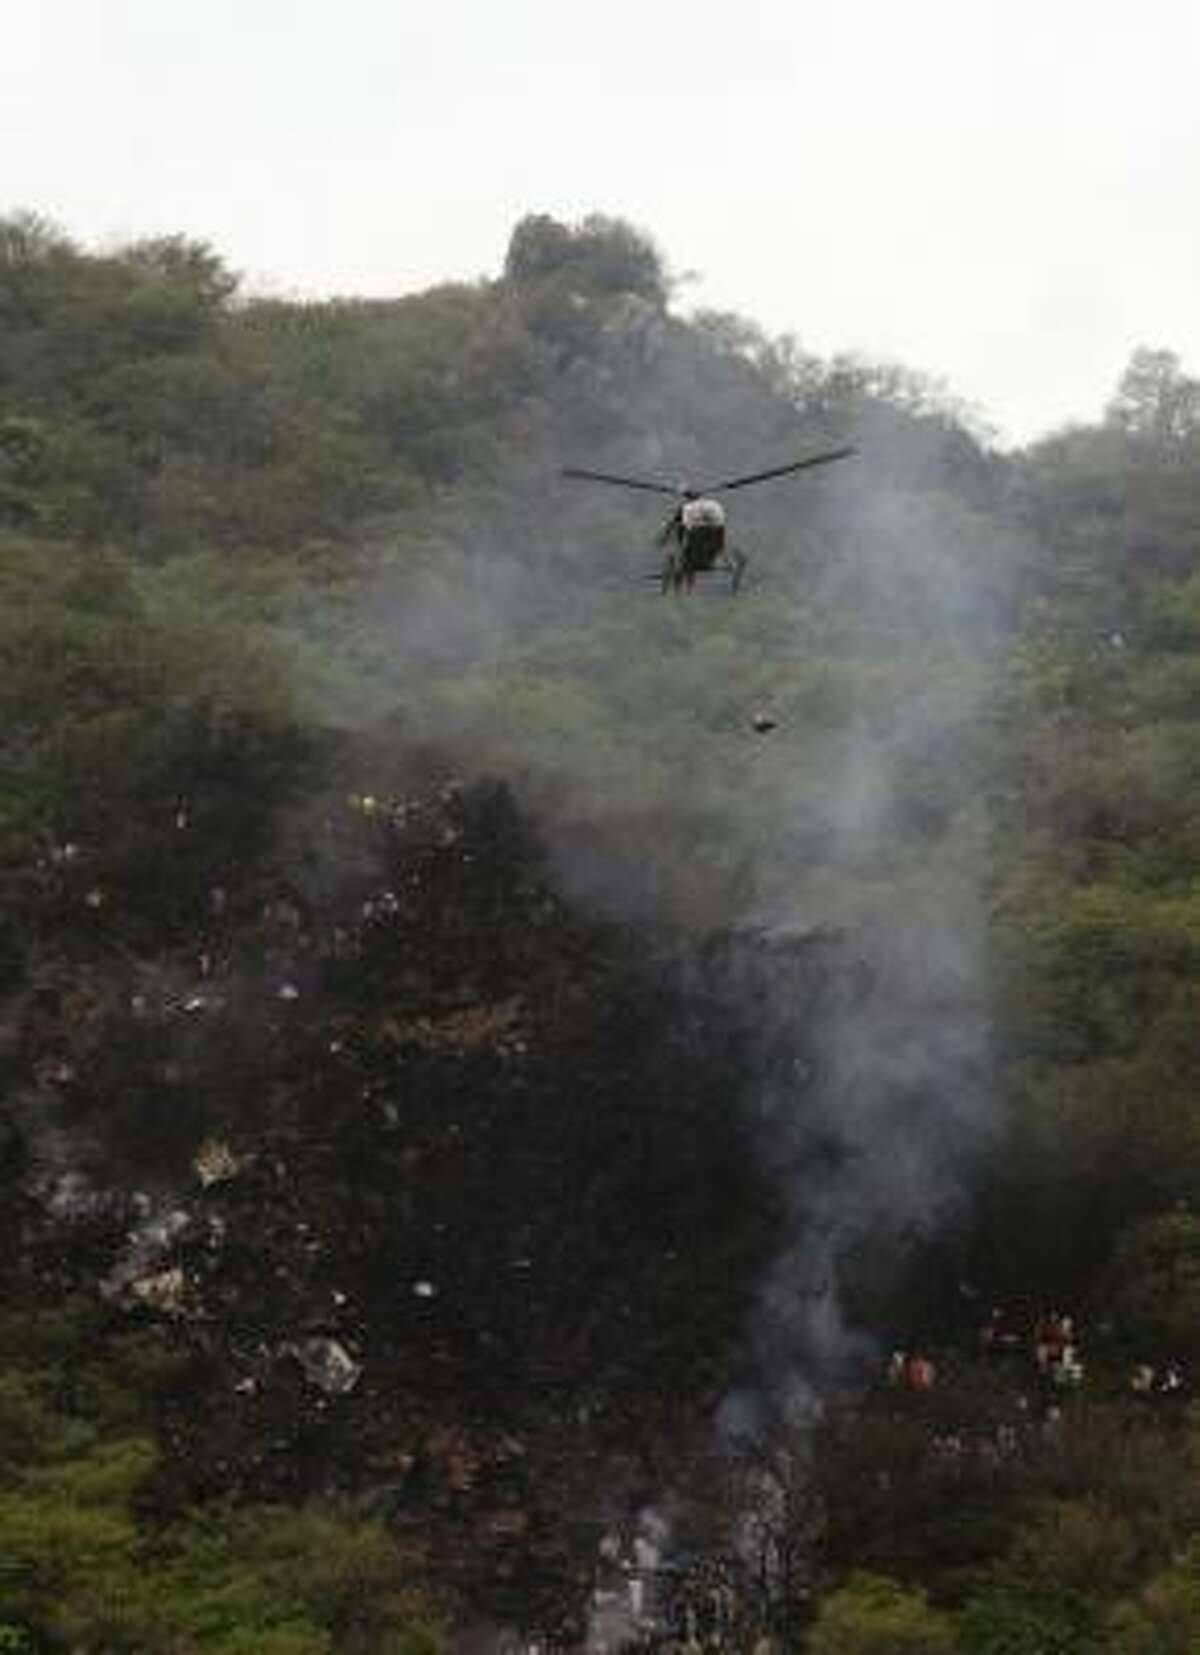 A Pakistani military helicopter carries victims' remains from the site of a passenger plane crash in the Margala Hills on the outskirts of Islamabad on July 28, 2010.